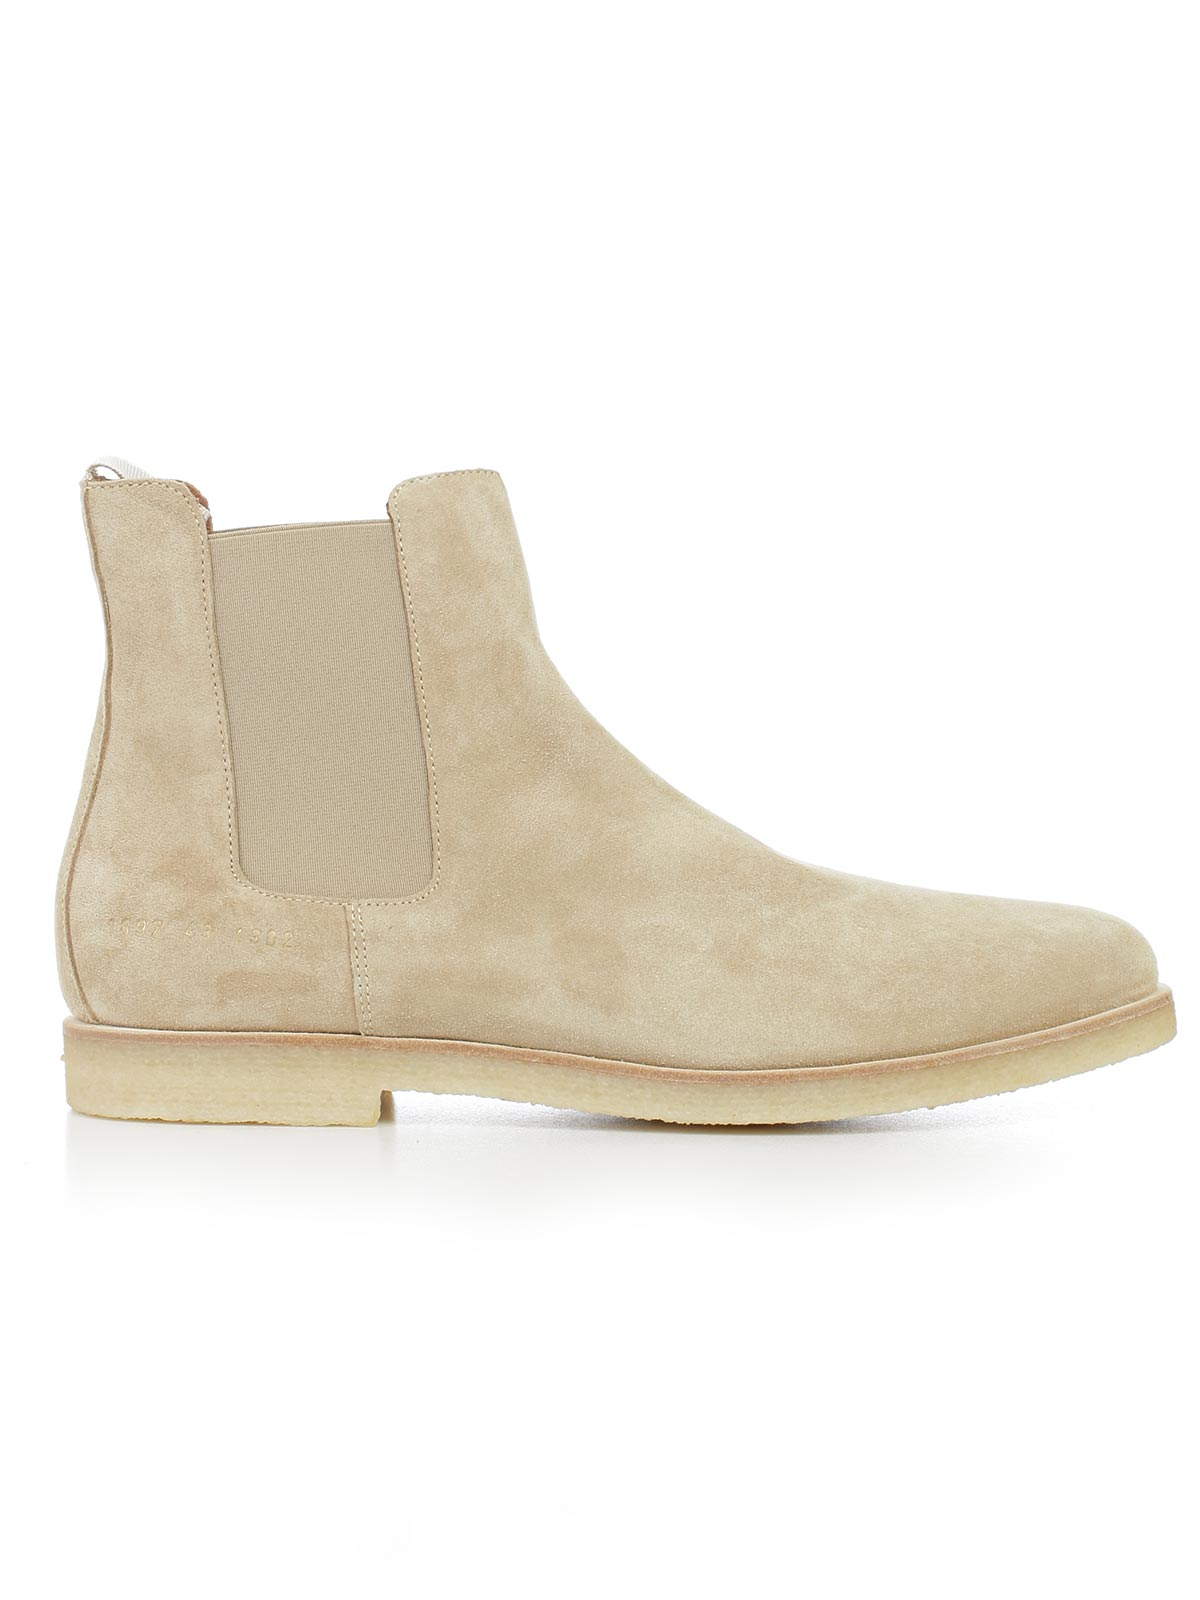 Picture of COMMON PROJECTS Boots